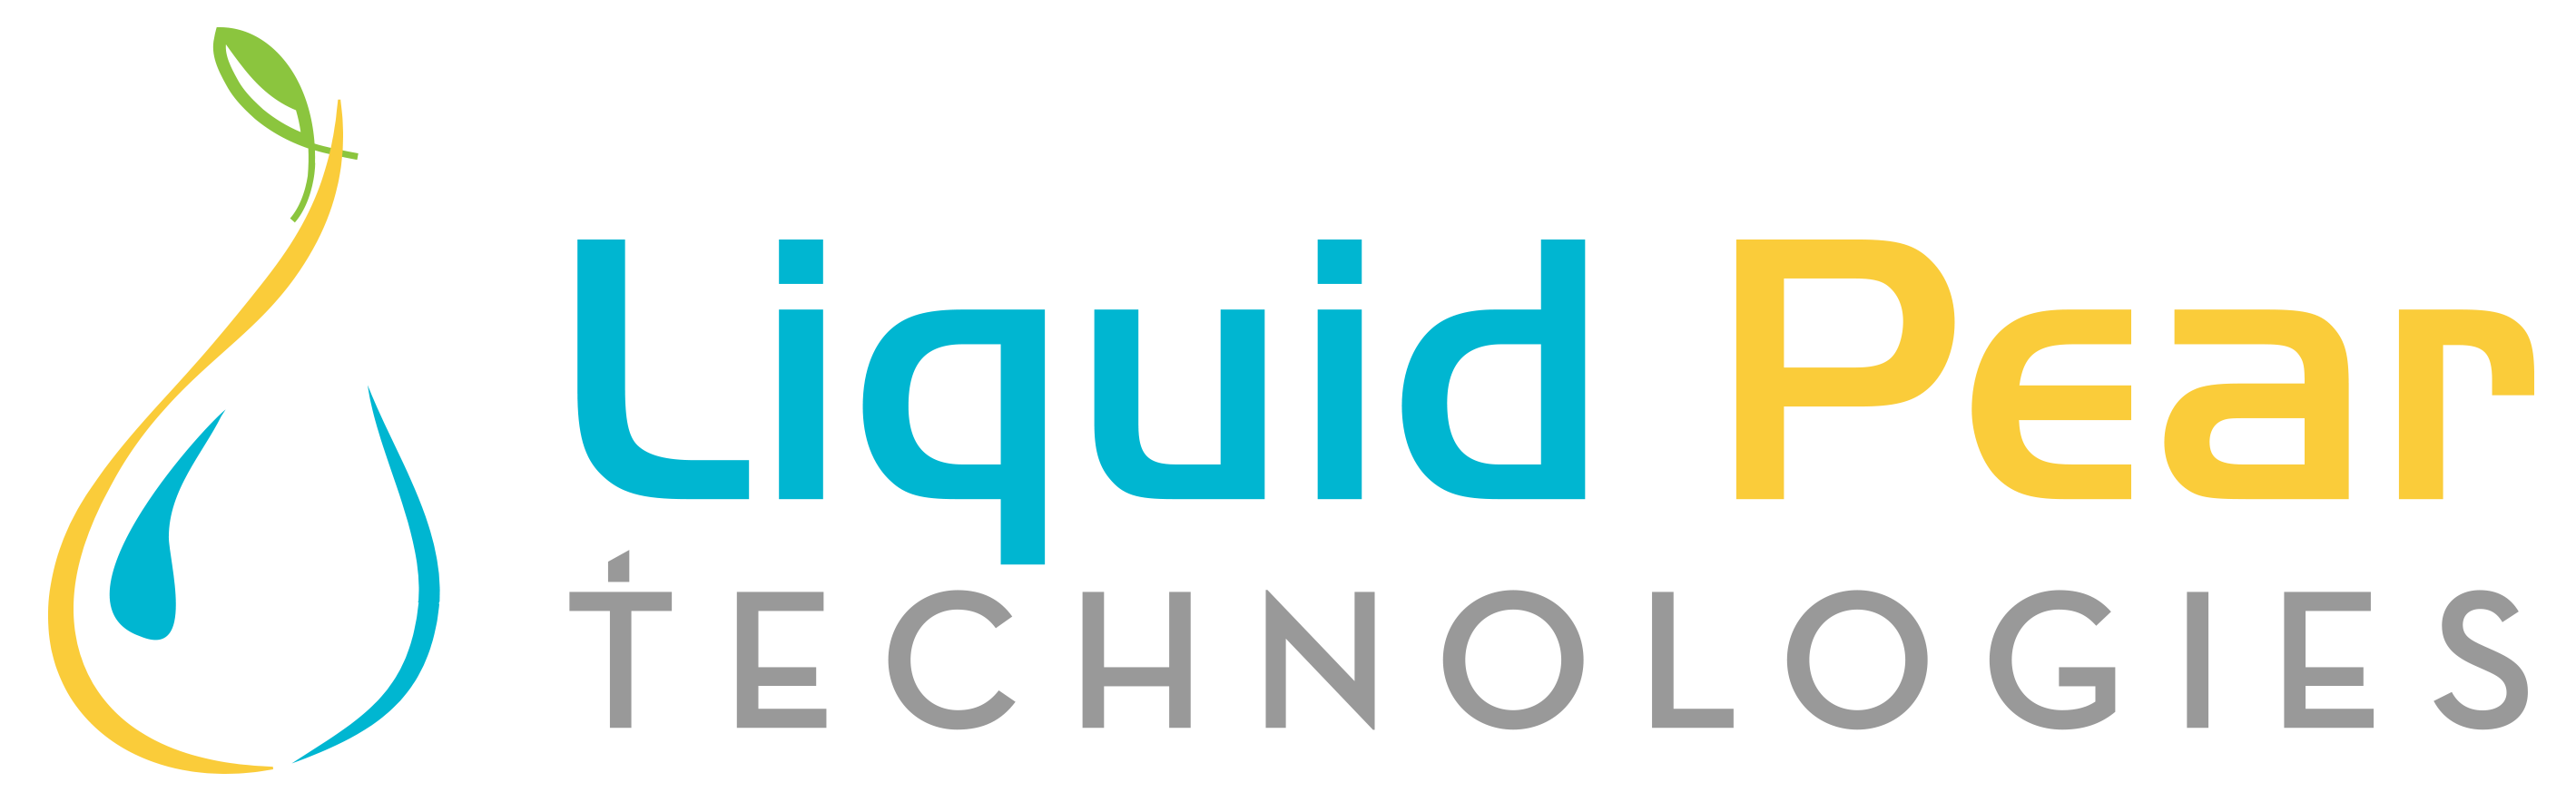 Liquid Pear Technologies